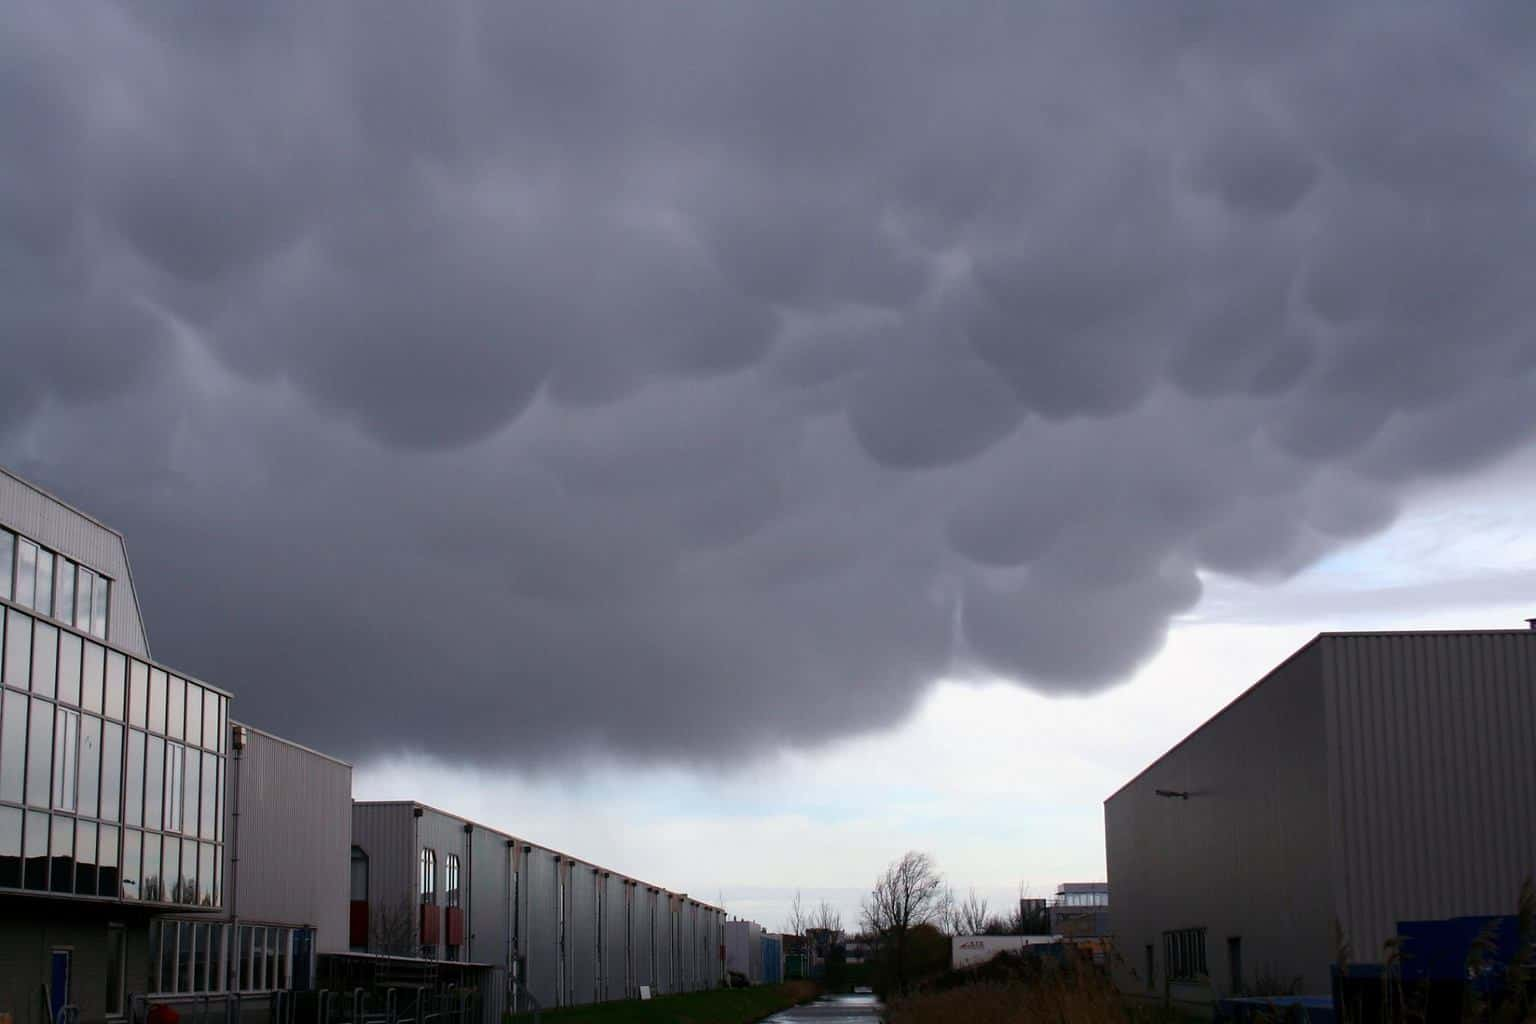 Mammatus clouds over my working place in Zoetermeer the Netherlands.